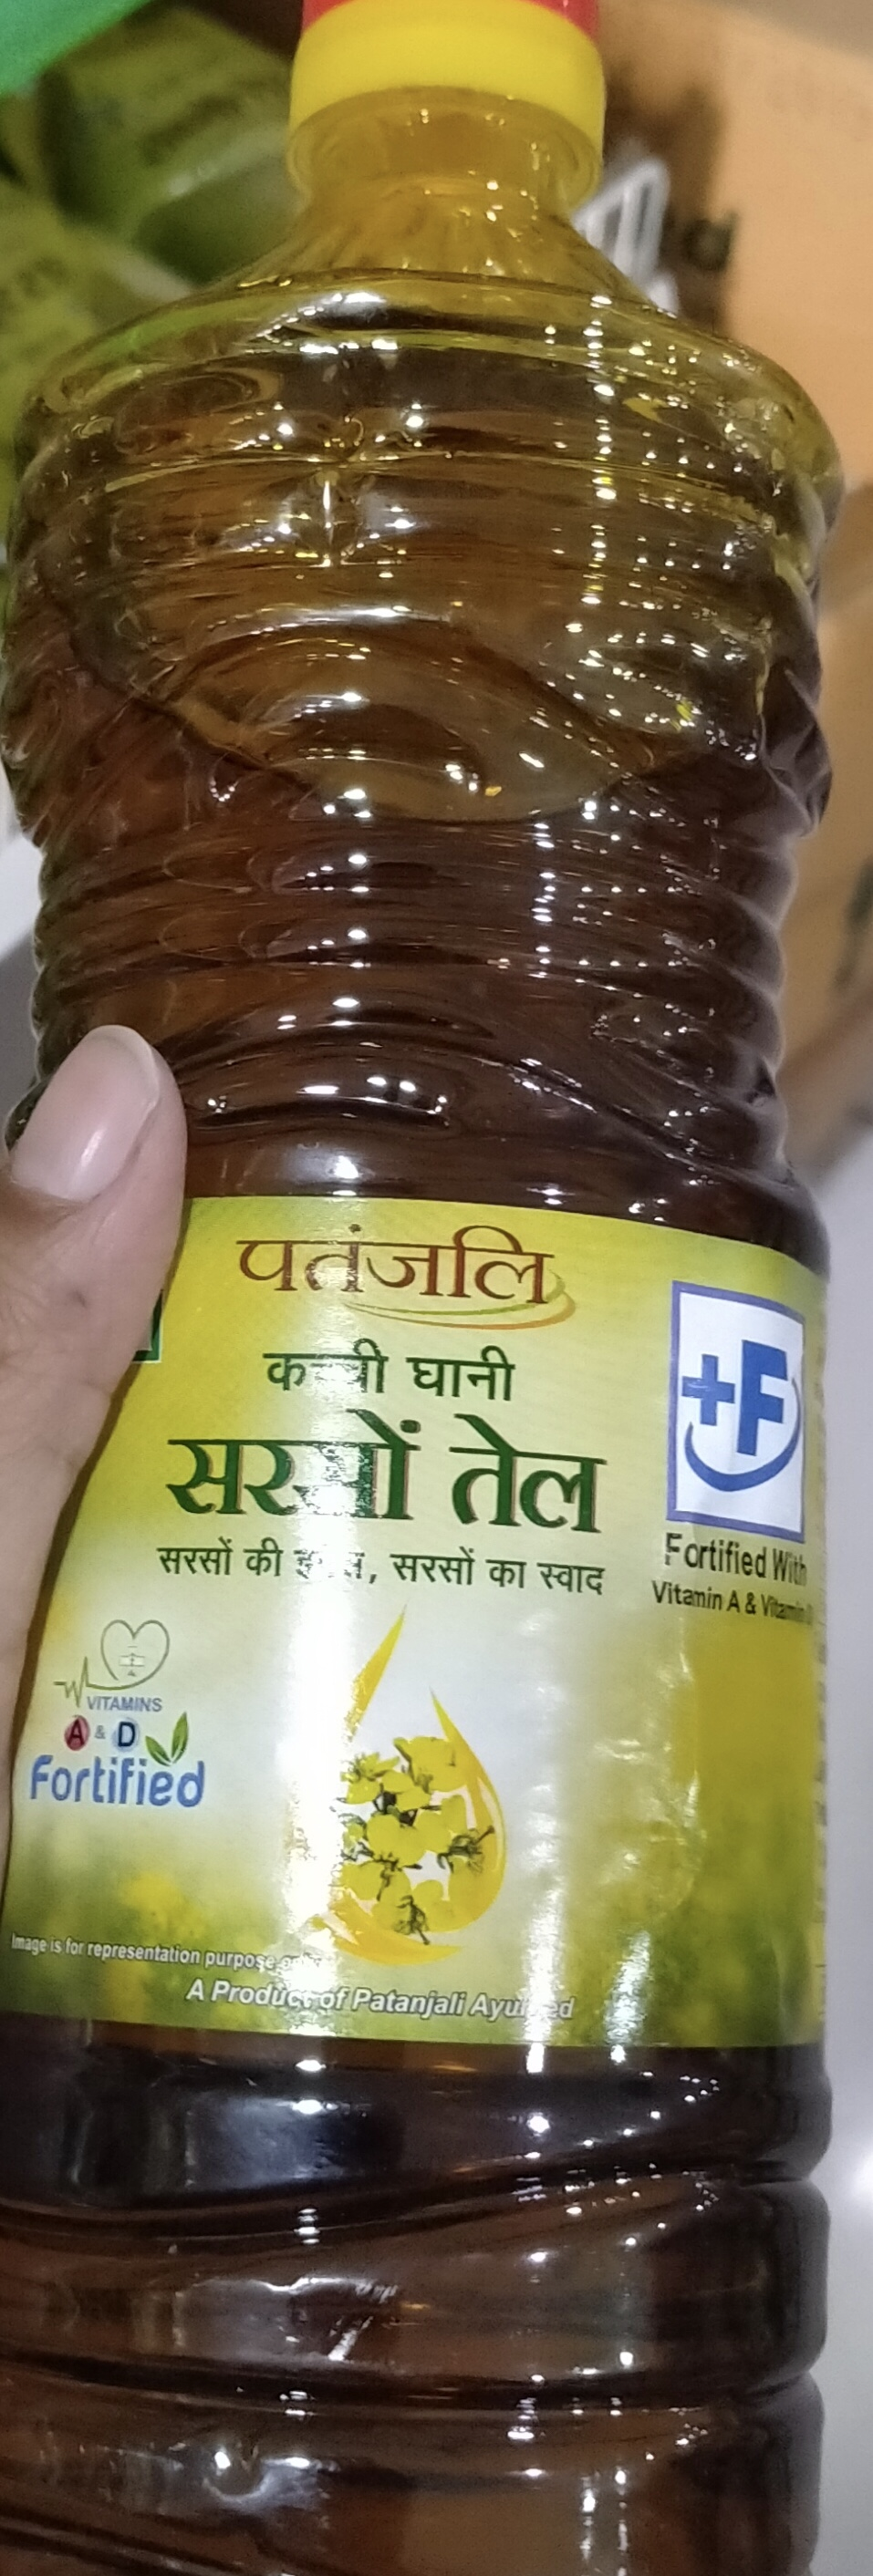 Patanjali Kachi Ghani Mustard Oil-Love this oil for cooking-By ritikajilka1991